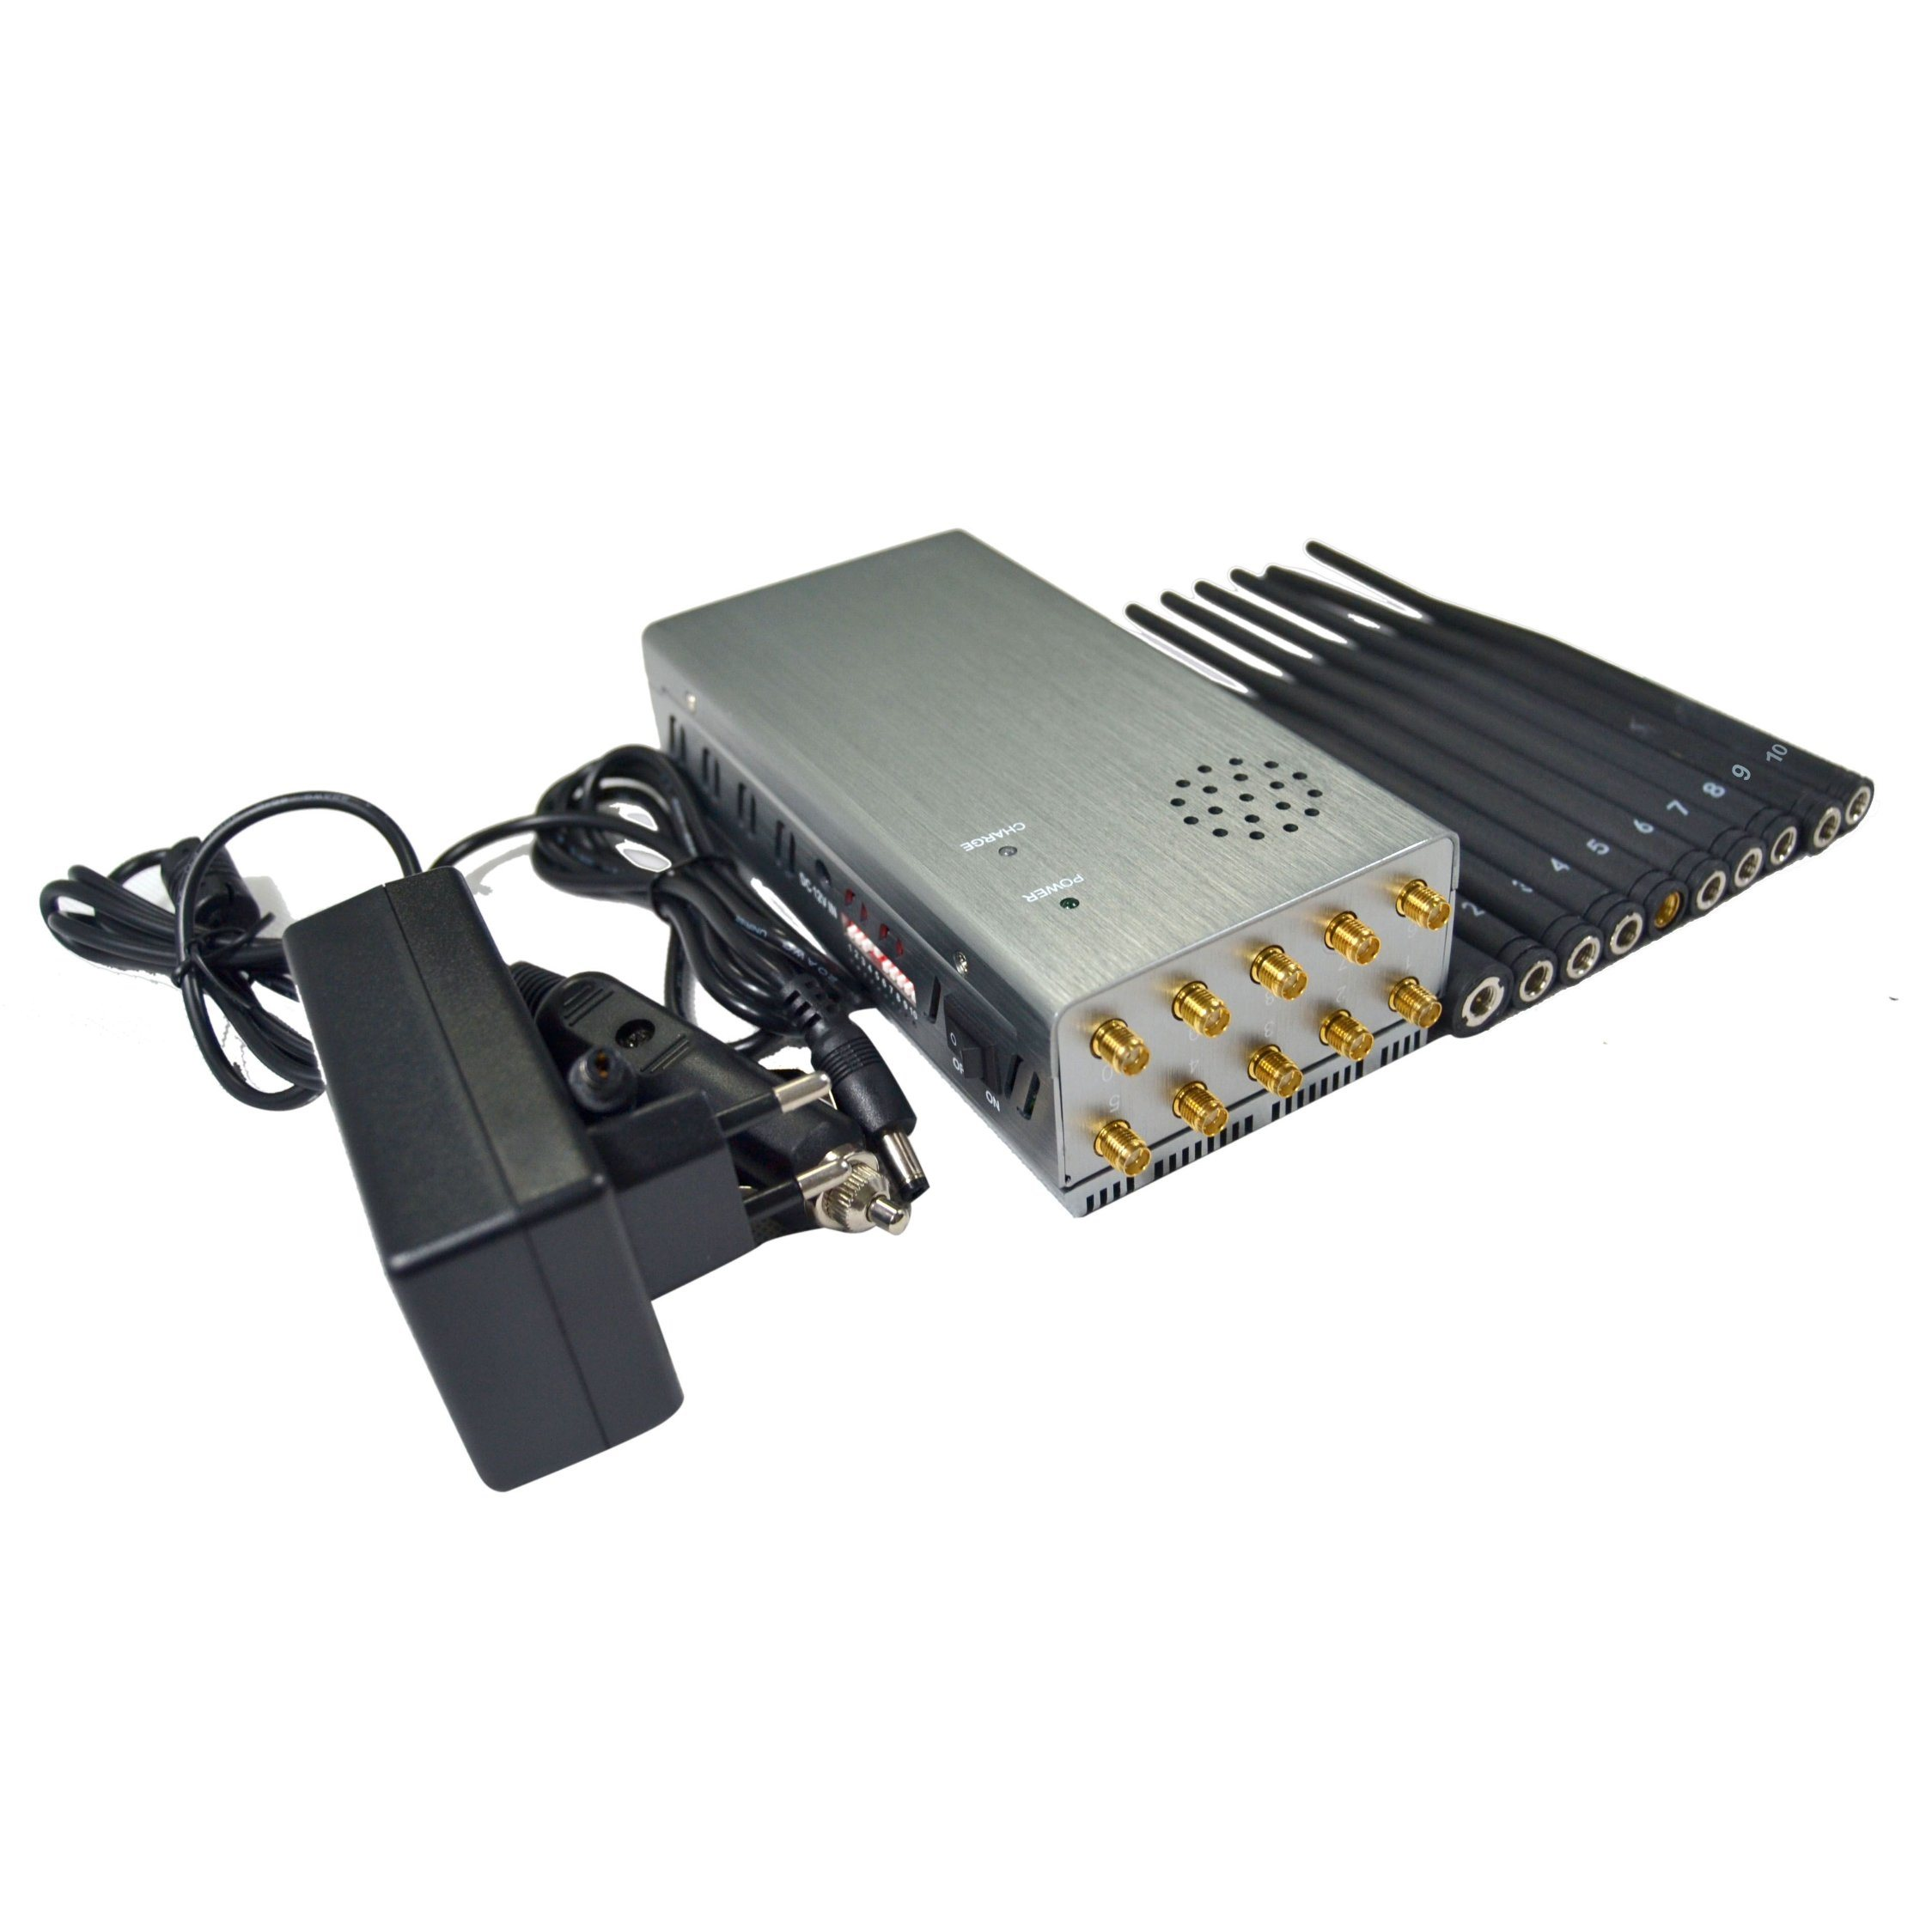 phone jammer lelong tailspin - China The King of Portable Jammers with 8000mA and 10 Antennas Including 2g 3G 4G 5g GPS 433MHz315MHz868MHz WiFi - China 8000mA Battery Jammer, Large Volume Power Signal Blocker